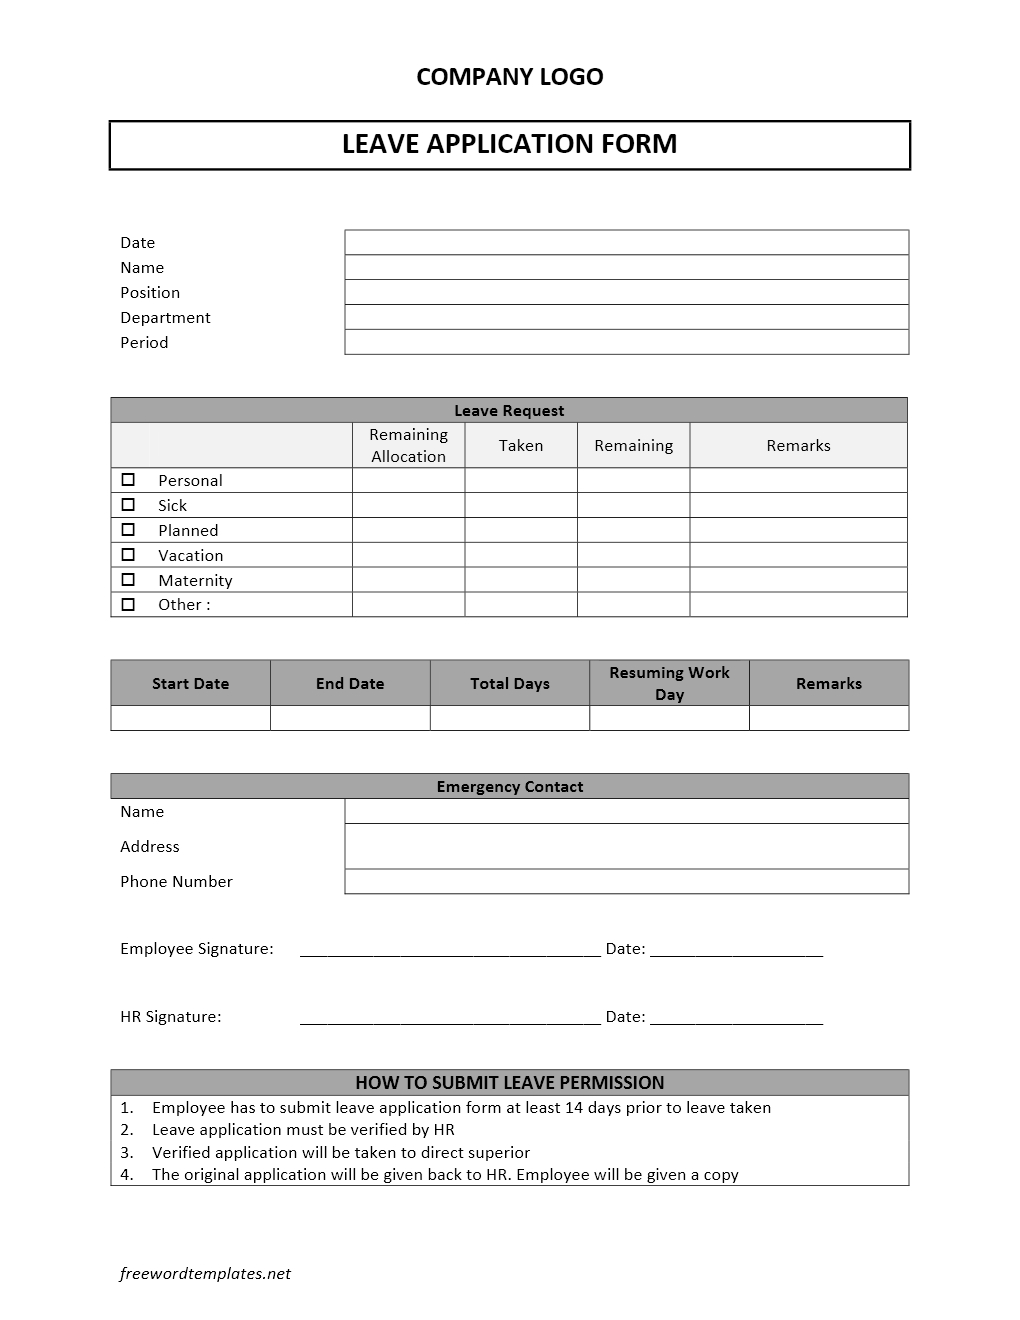 Leave application form model 2g leave application form template model 2 altavistaventures